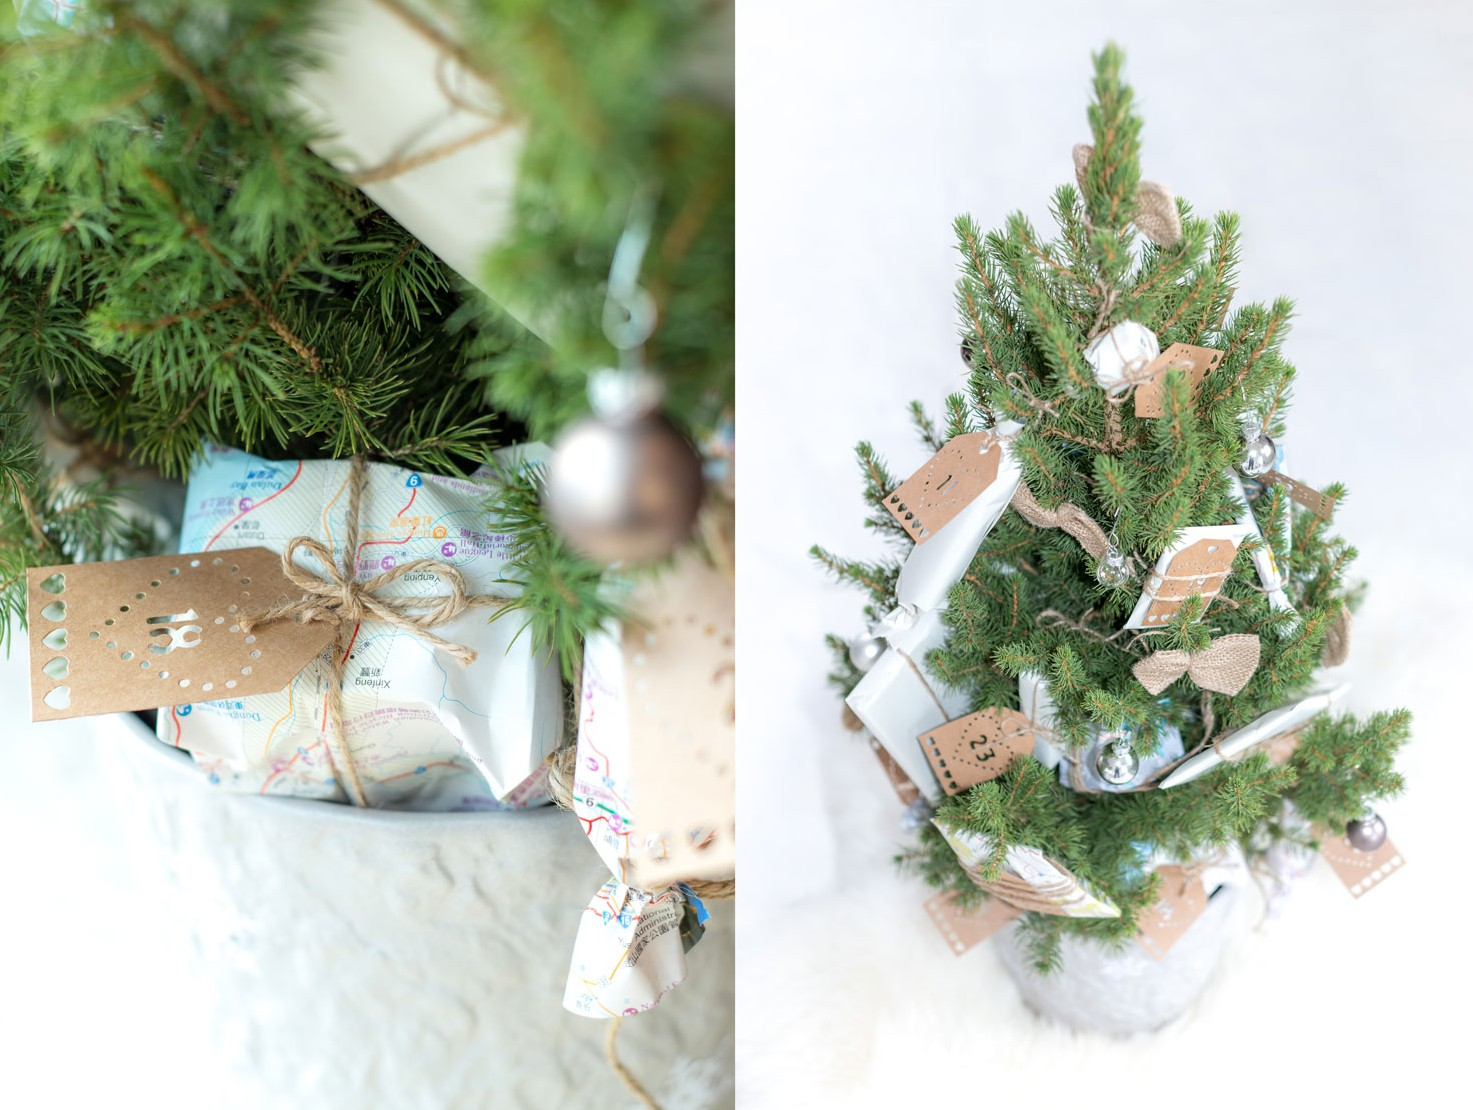 DIY-Advenzkalender-Tannenbaum-ps